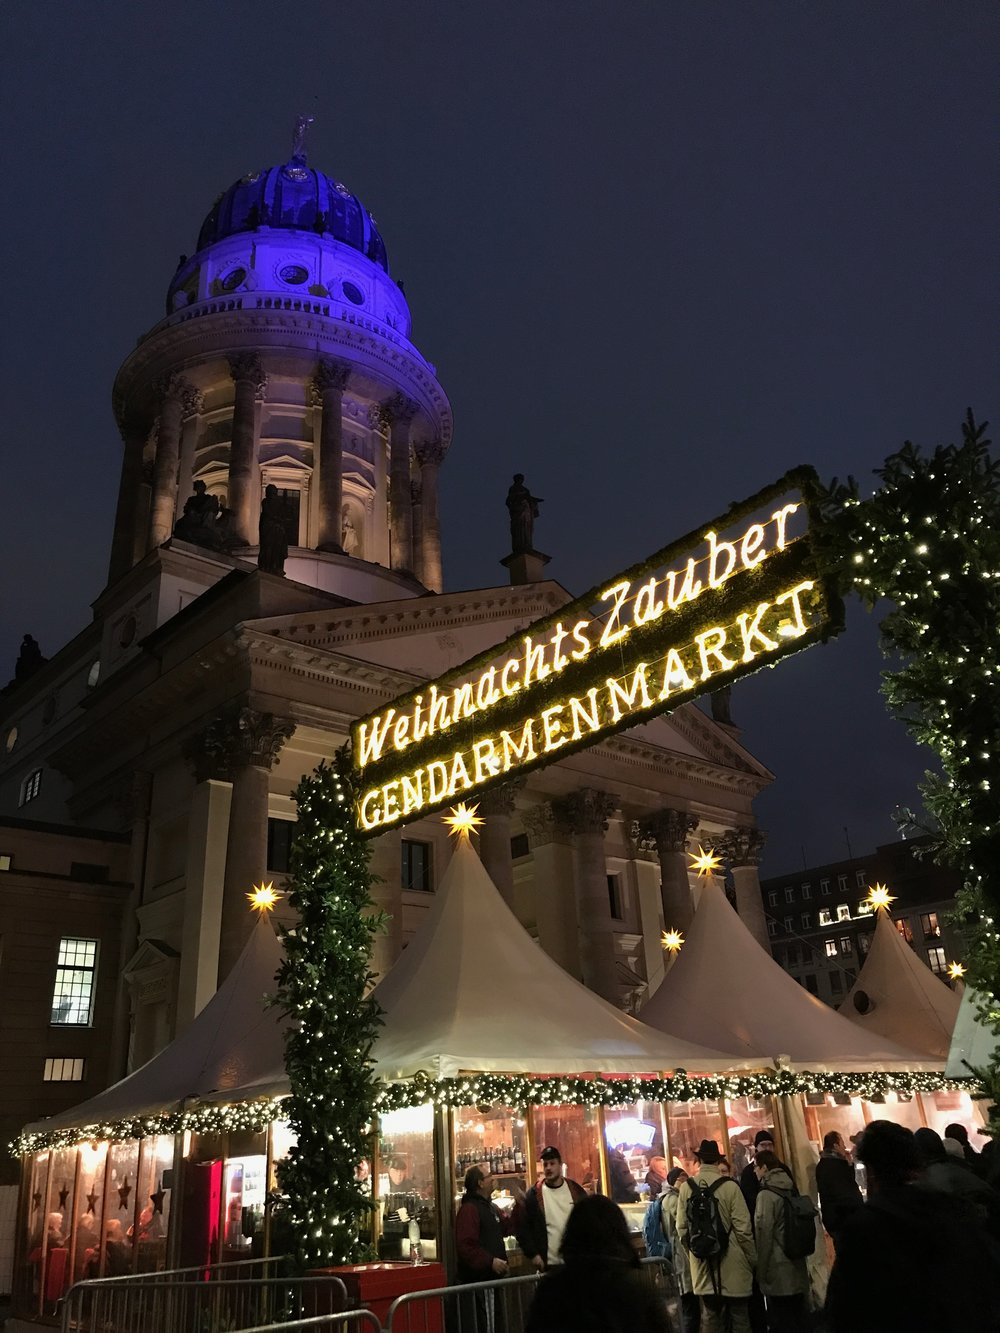 The Christmas market on our first night in Berlin.